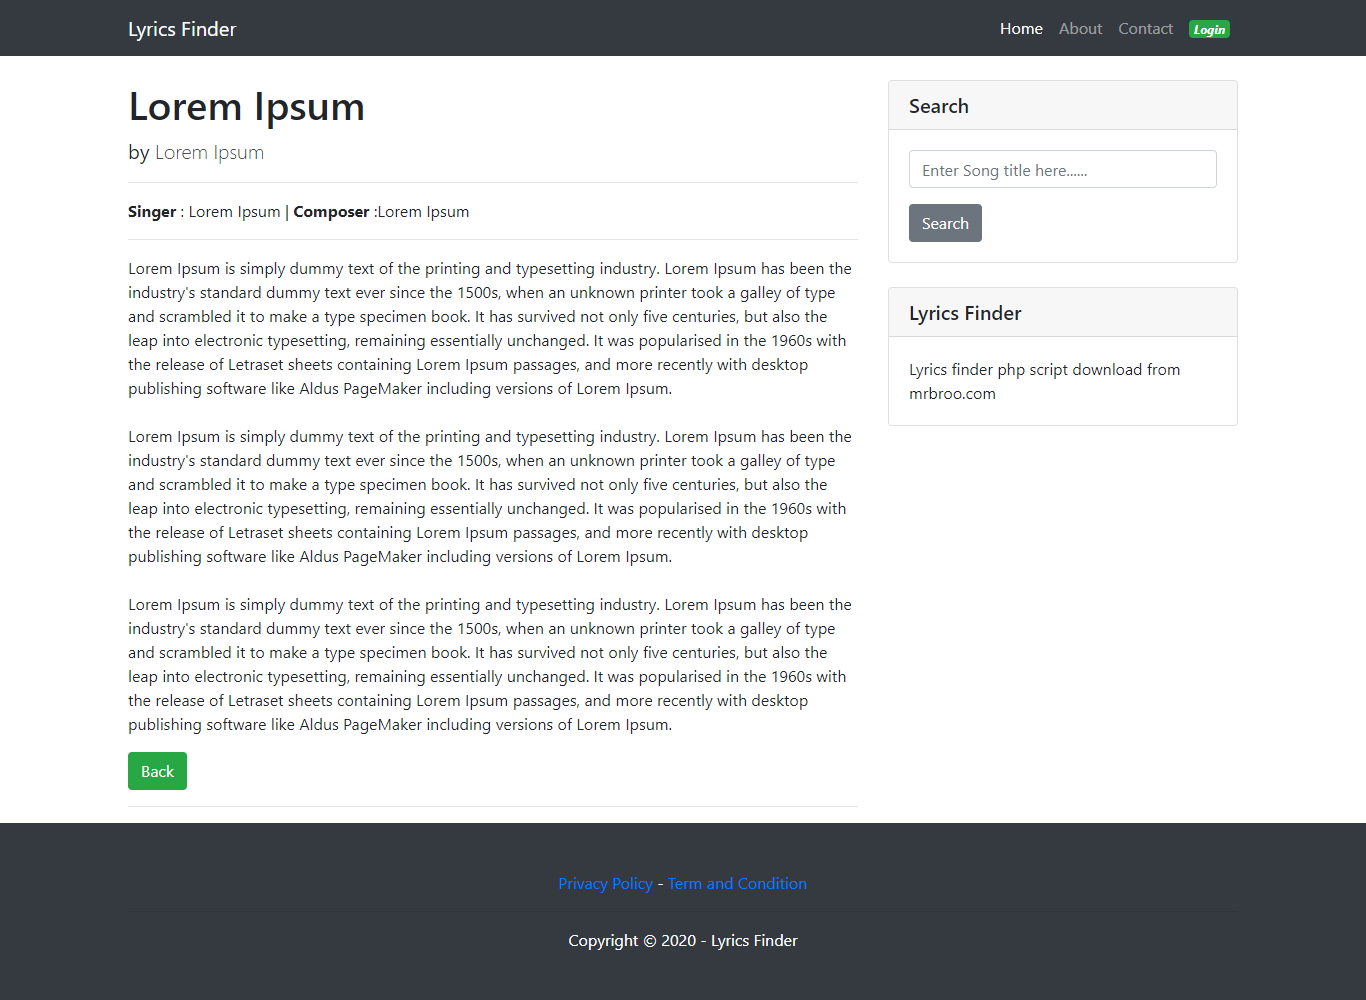 Lyrics finder is built with PHP. It's a song lyrics website with admin panel.